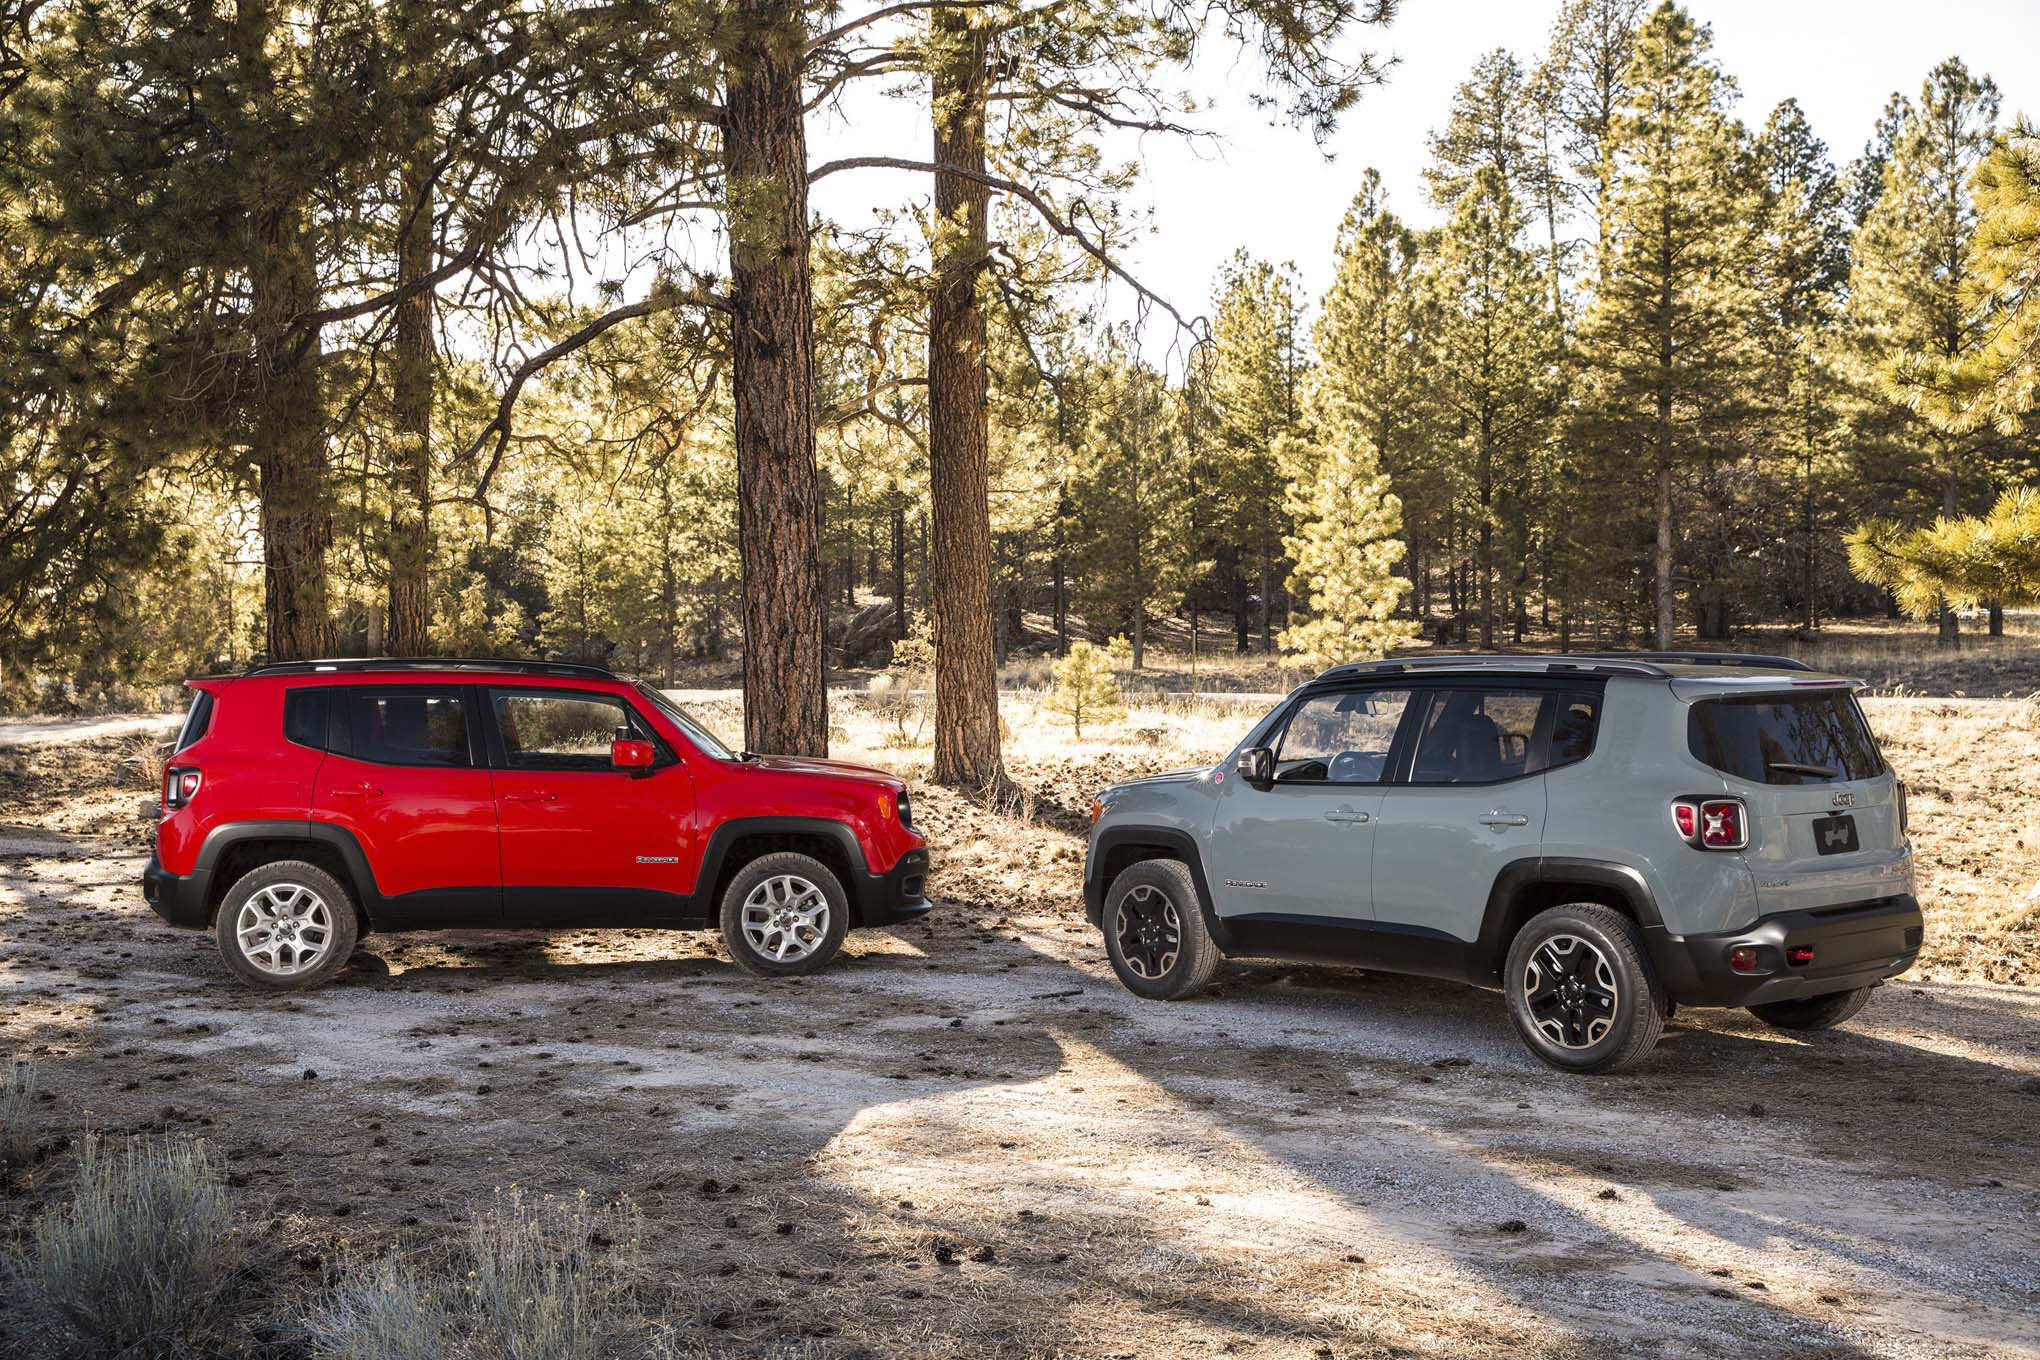 2015 Jeep Renegade Trailhawk 2015 Jeep Renegade latitude side